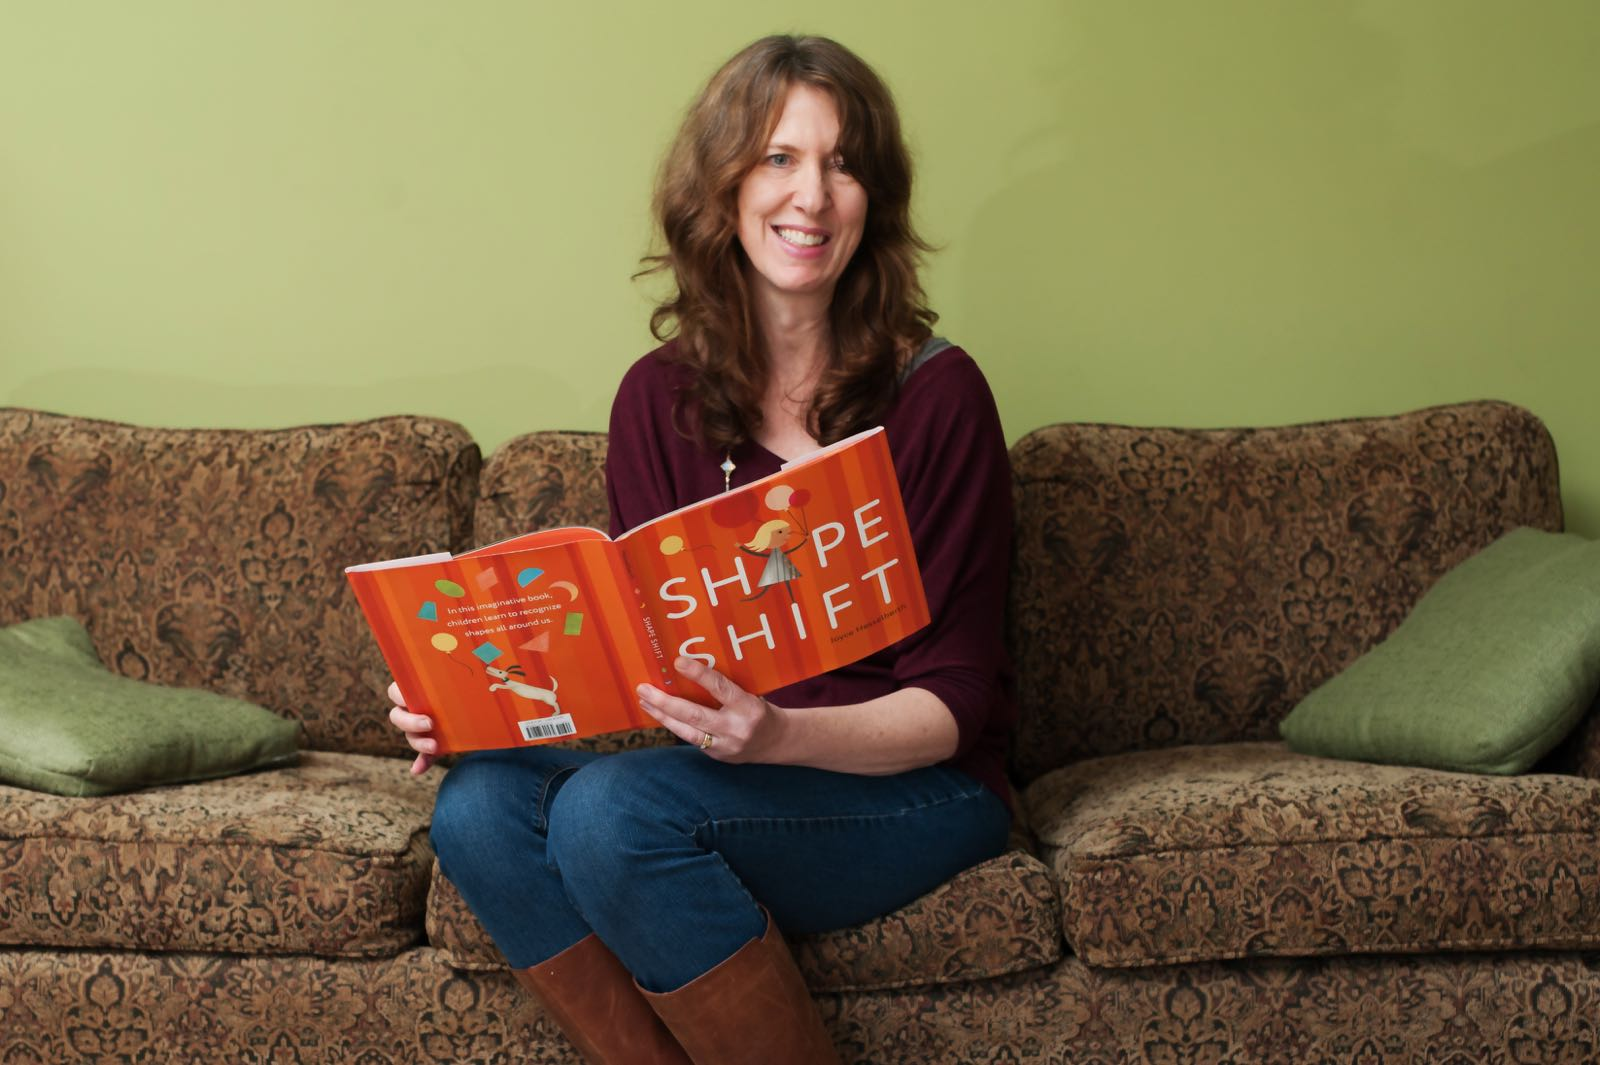 Shape Shift - All about the book by Joyce Hesselberth + a fun craft! - (cool) progeny